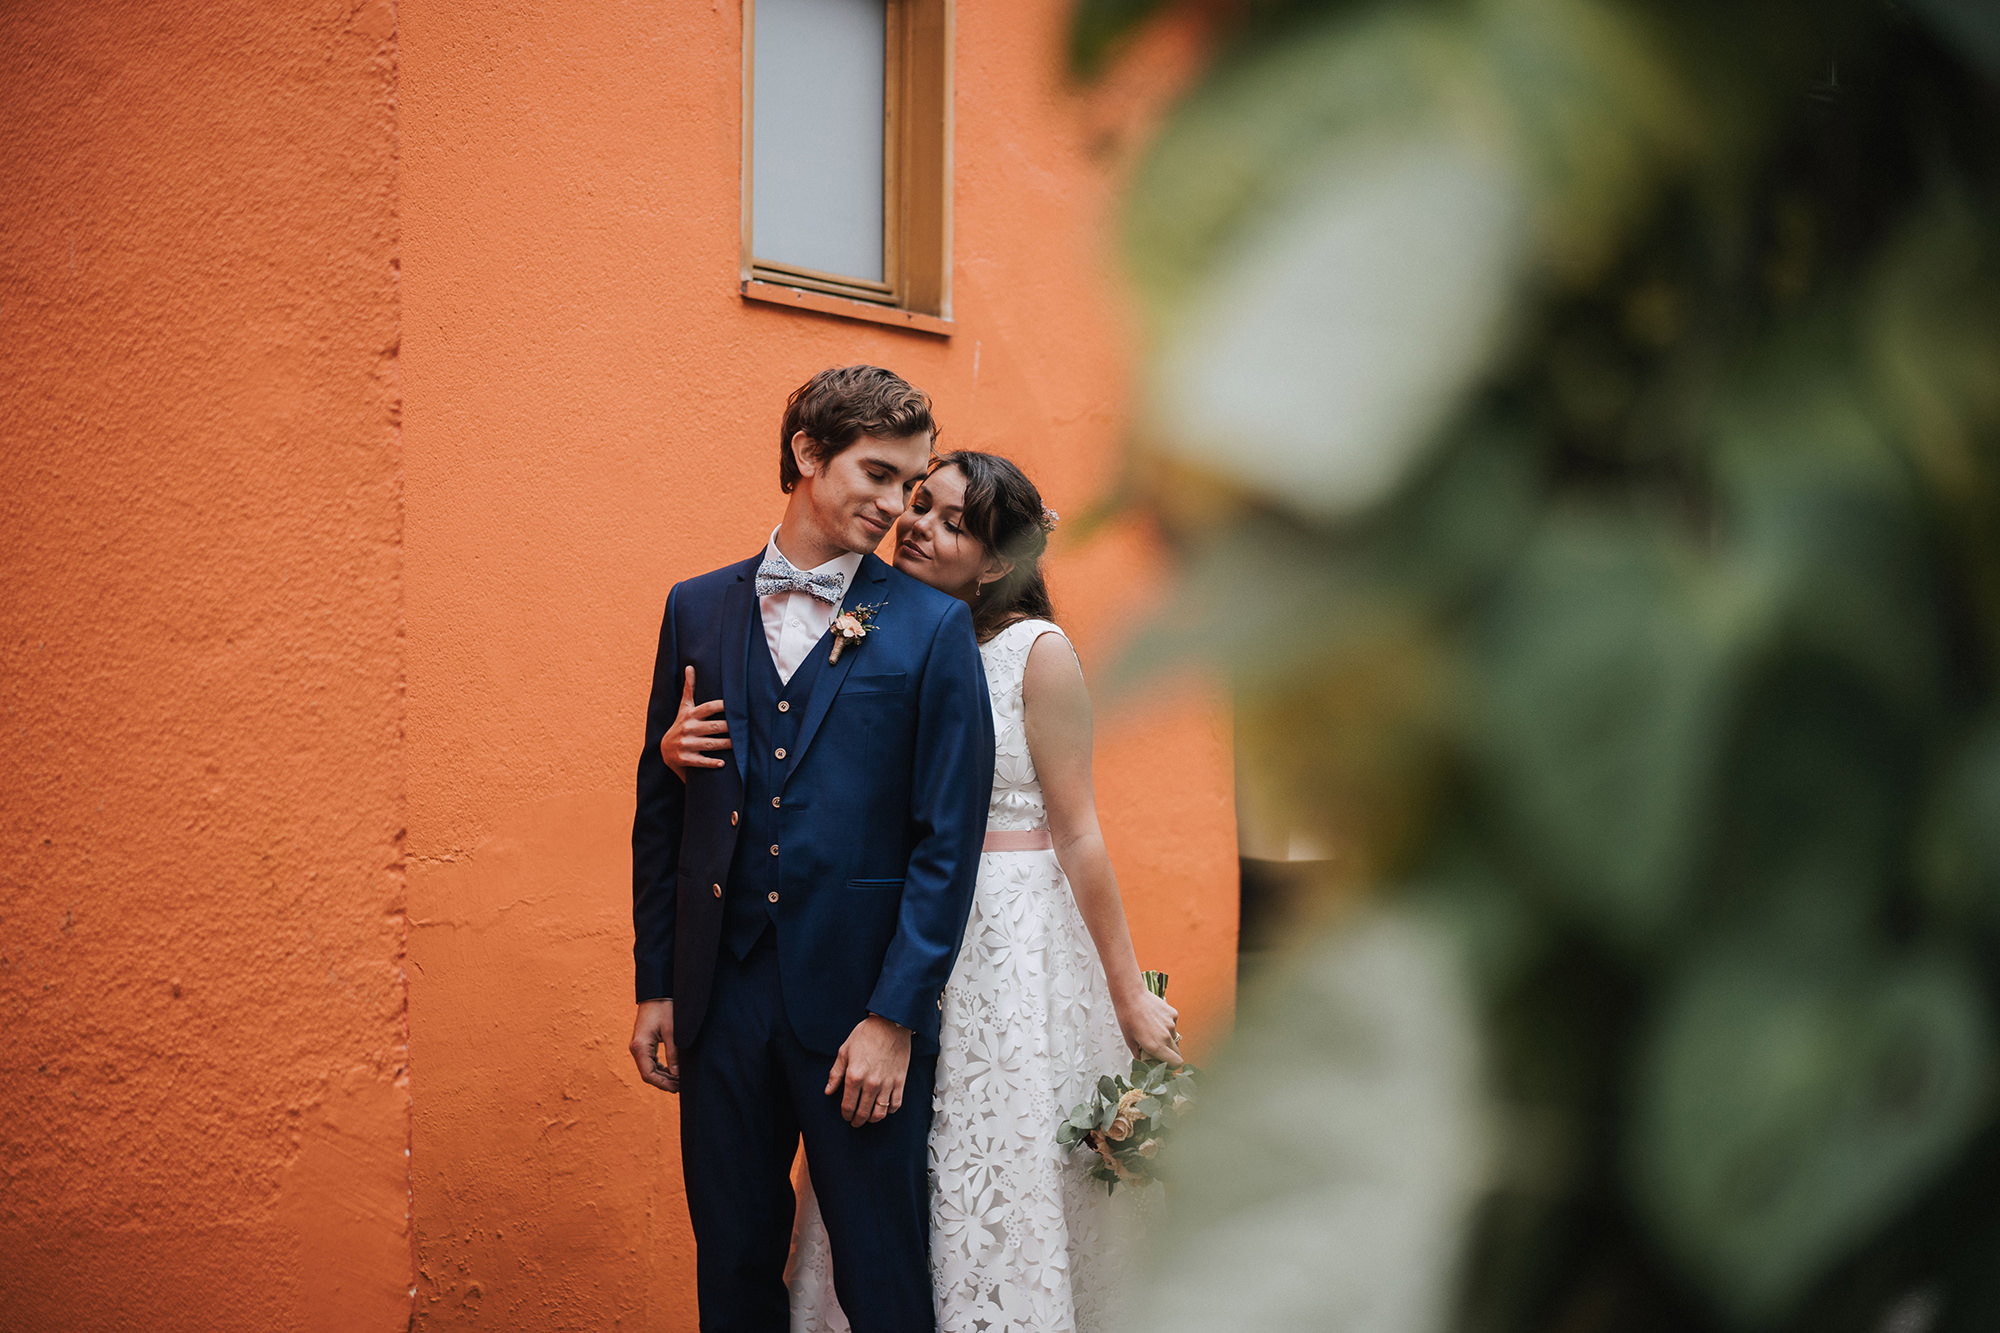 wedding_nantes_colored_couple_neupapphotography.jpg